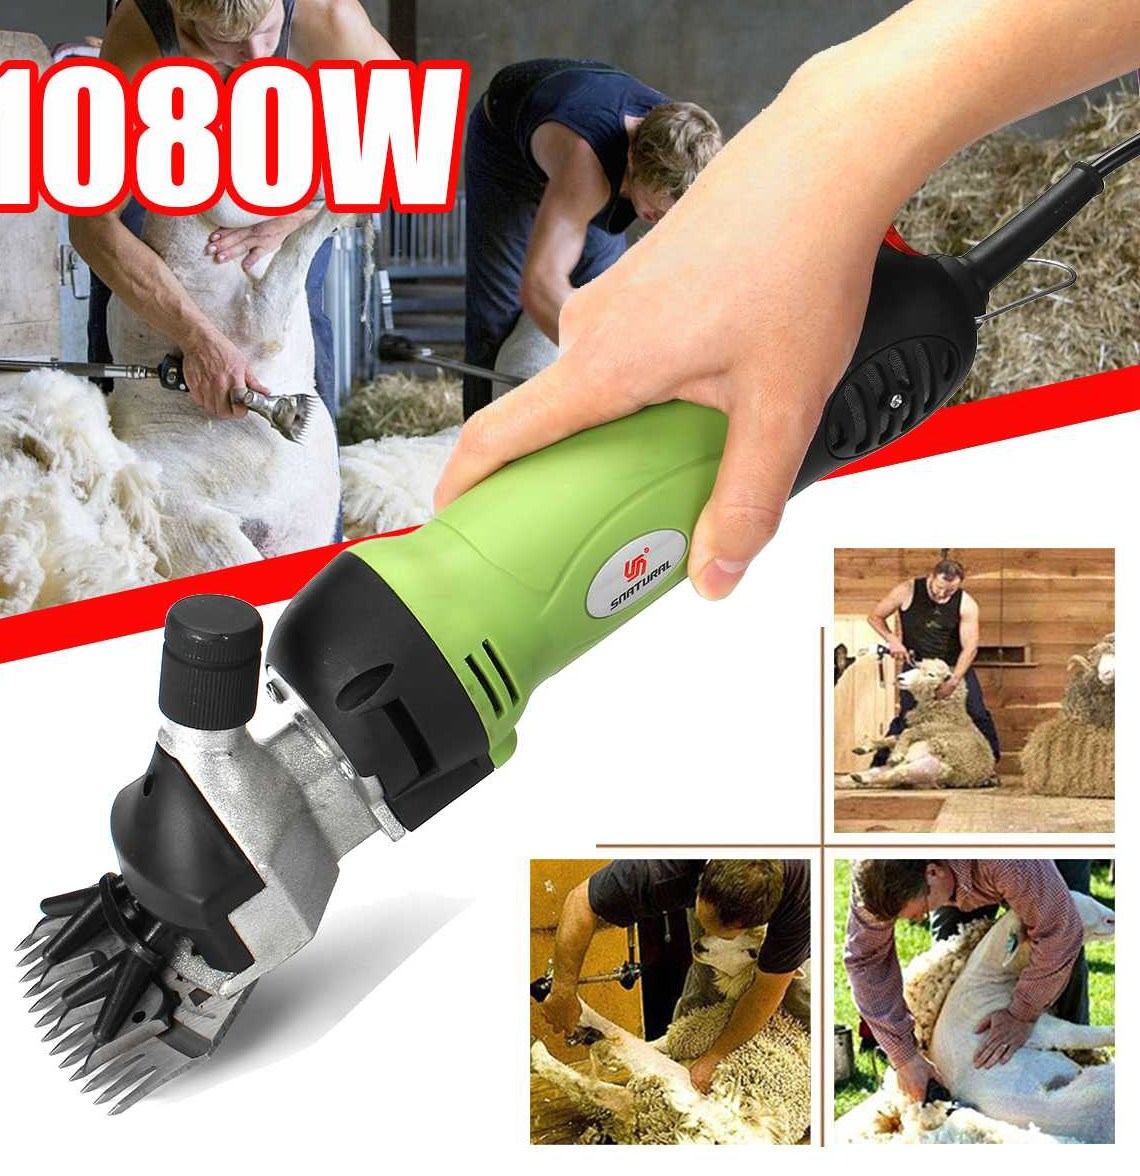 1080W Electric Shearing Clipper Shear Sheep Goats Alpaca Shears Animal font b Hair b font Shearing